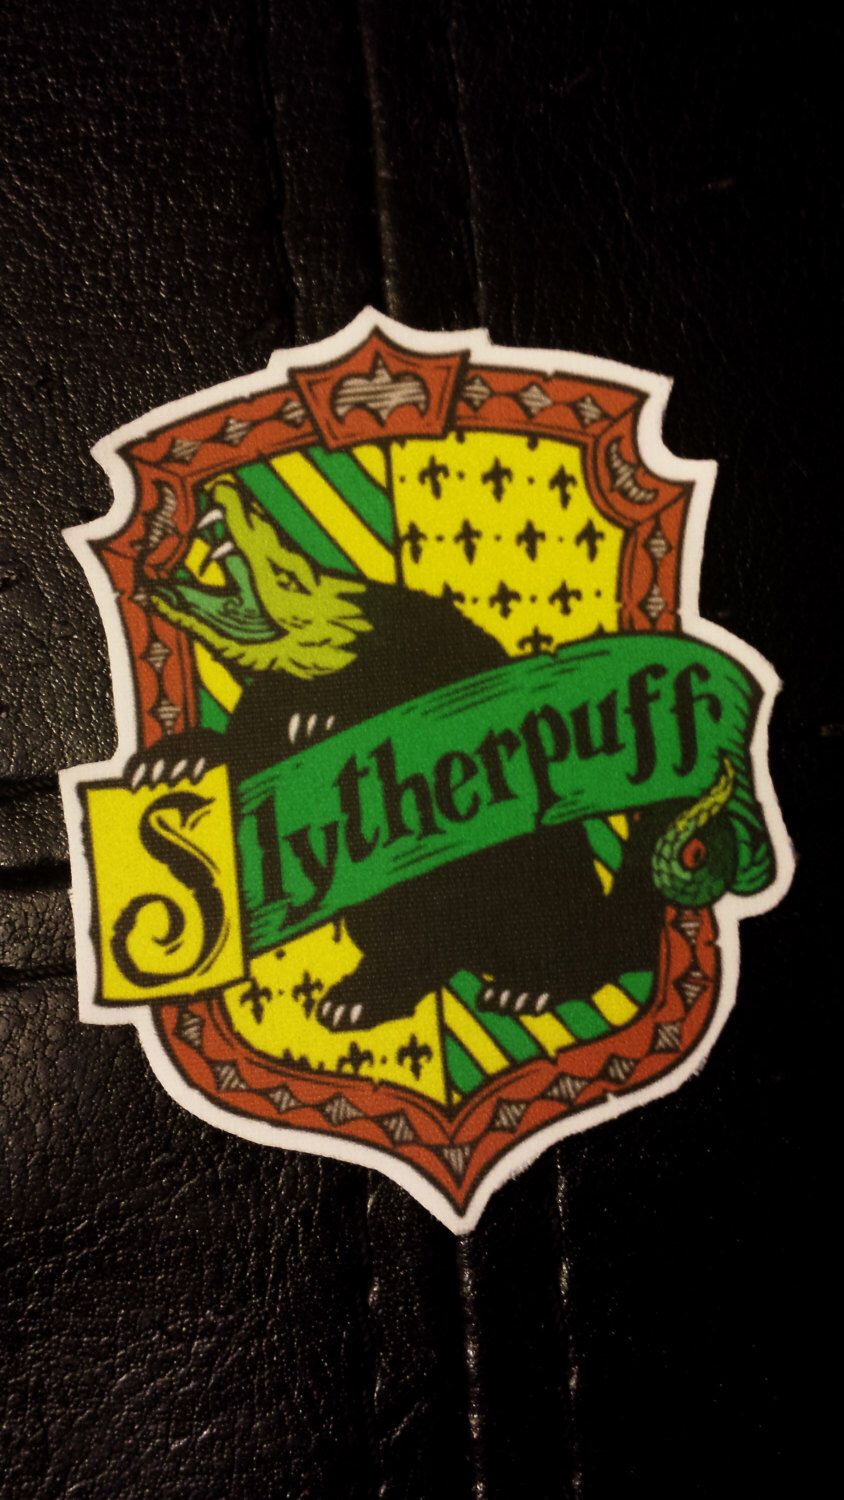 Harry Potter Welches Haus Slytherpuff Cross House Crest Vinyl Sticker Hobby Harry